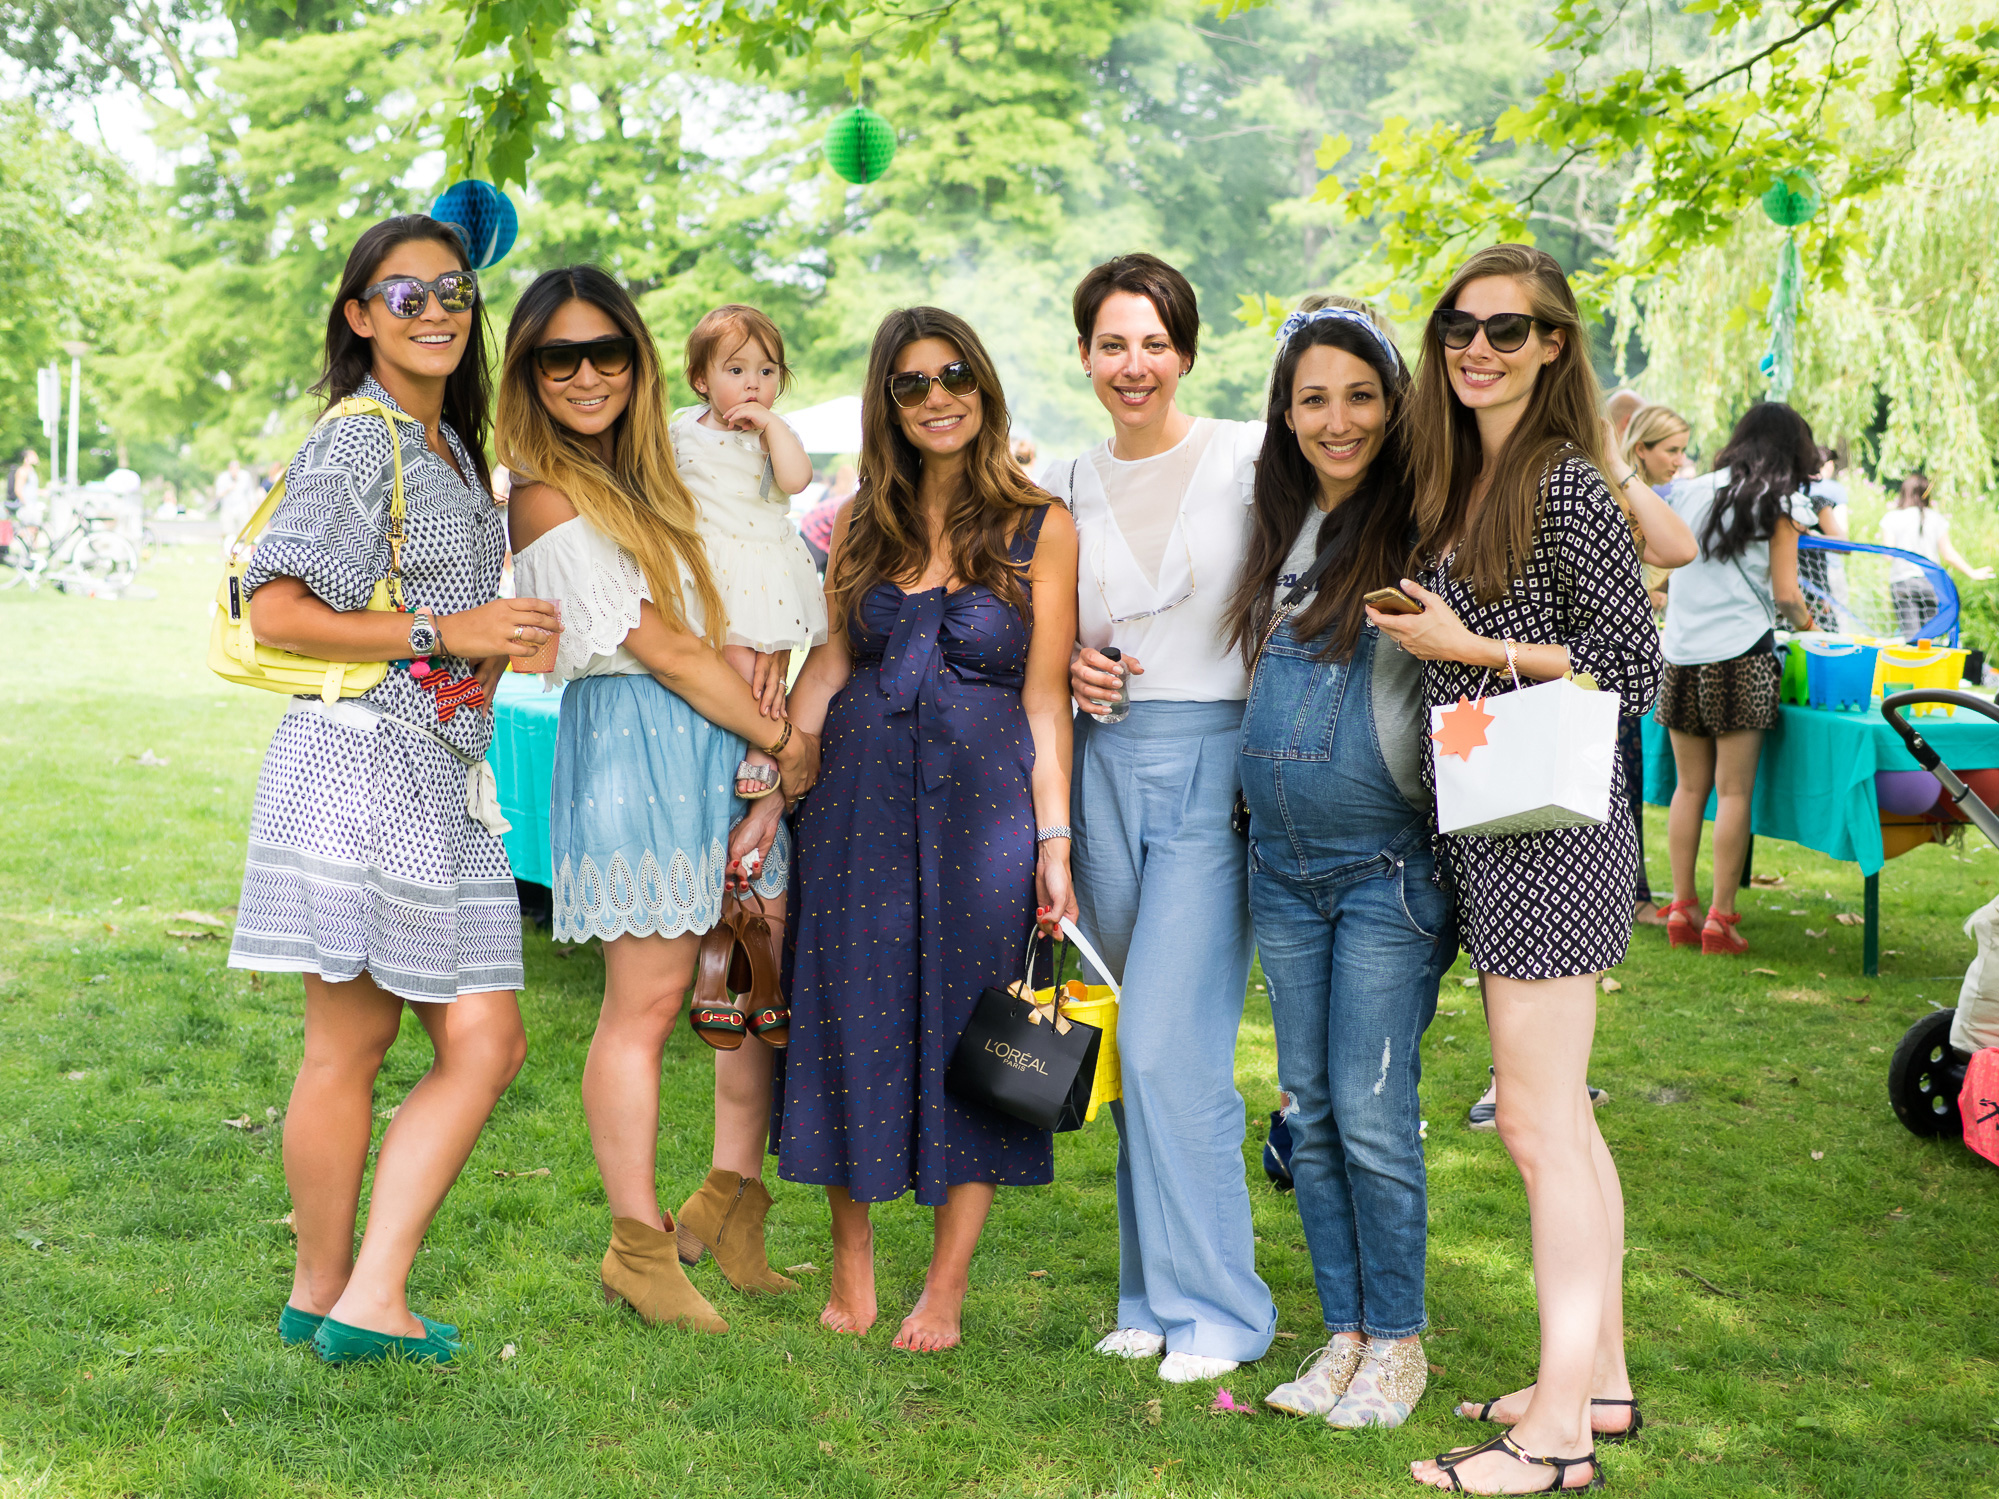 PretaPregnant_Janine_THEMOM_Goosecraft_Loreal_Noppies_Polaroid_Summerparty_BBQ_By_Marinke_Davelaar (26)